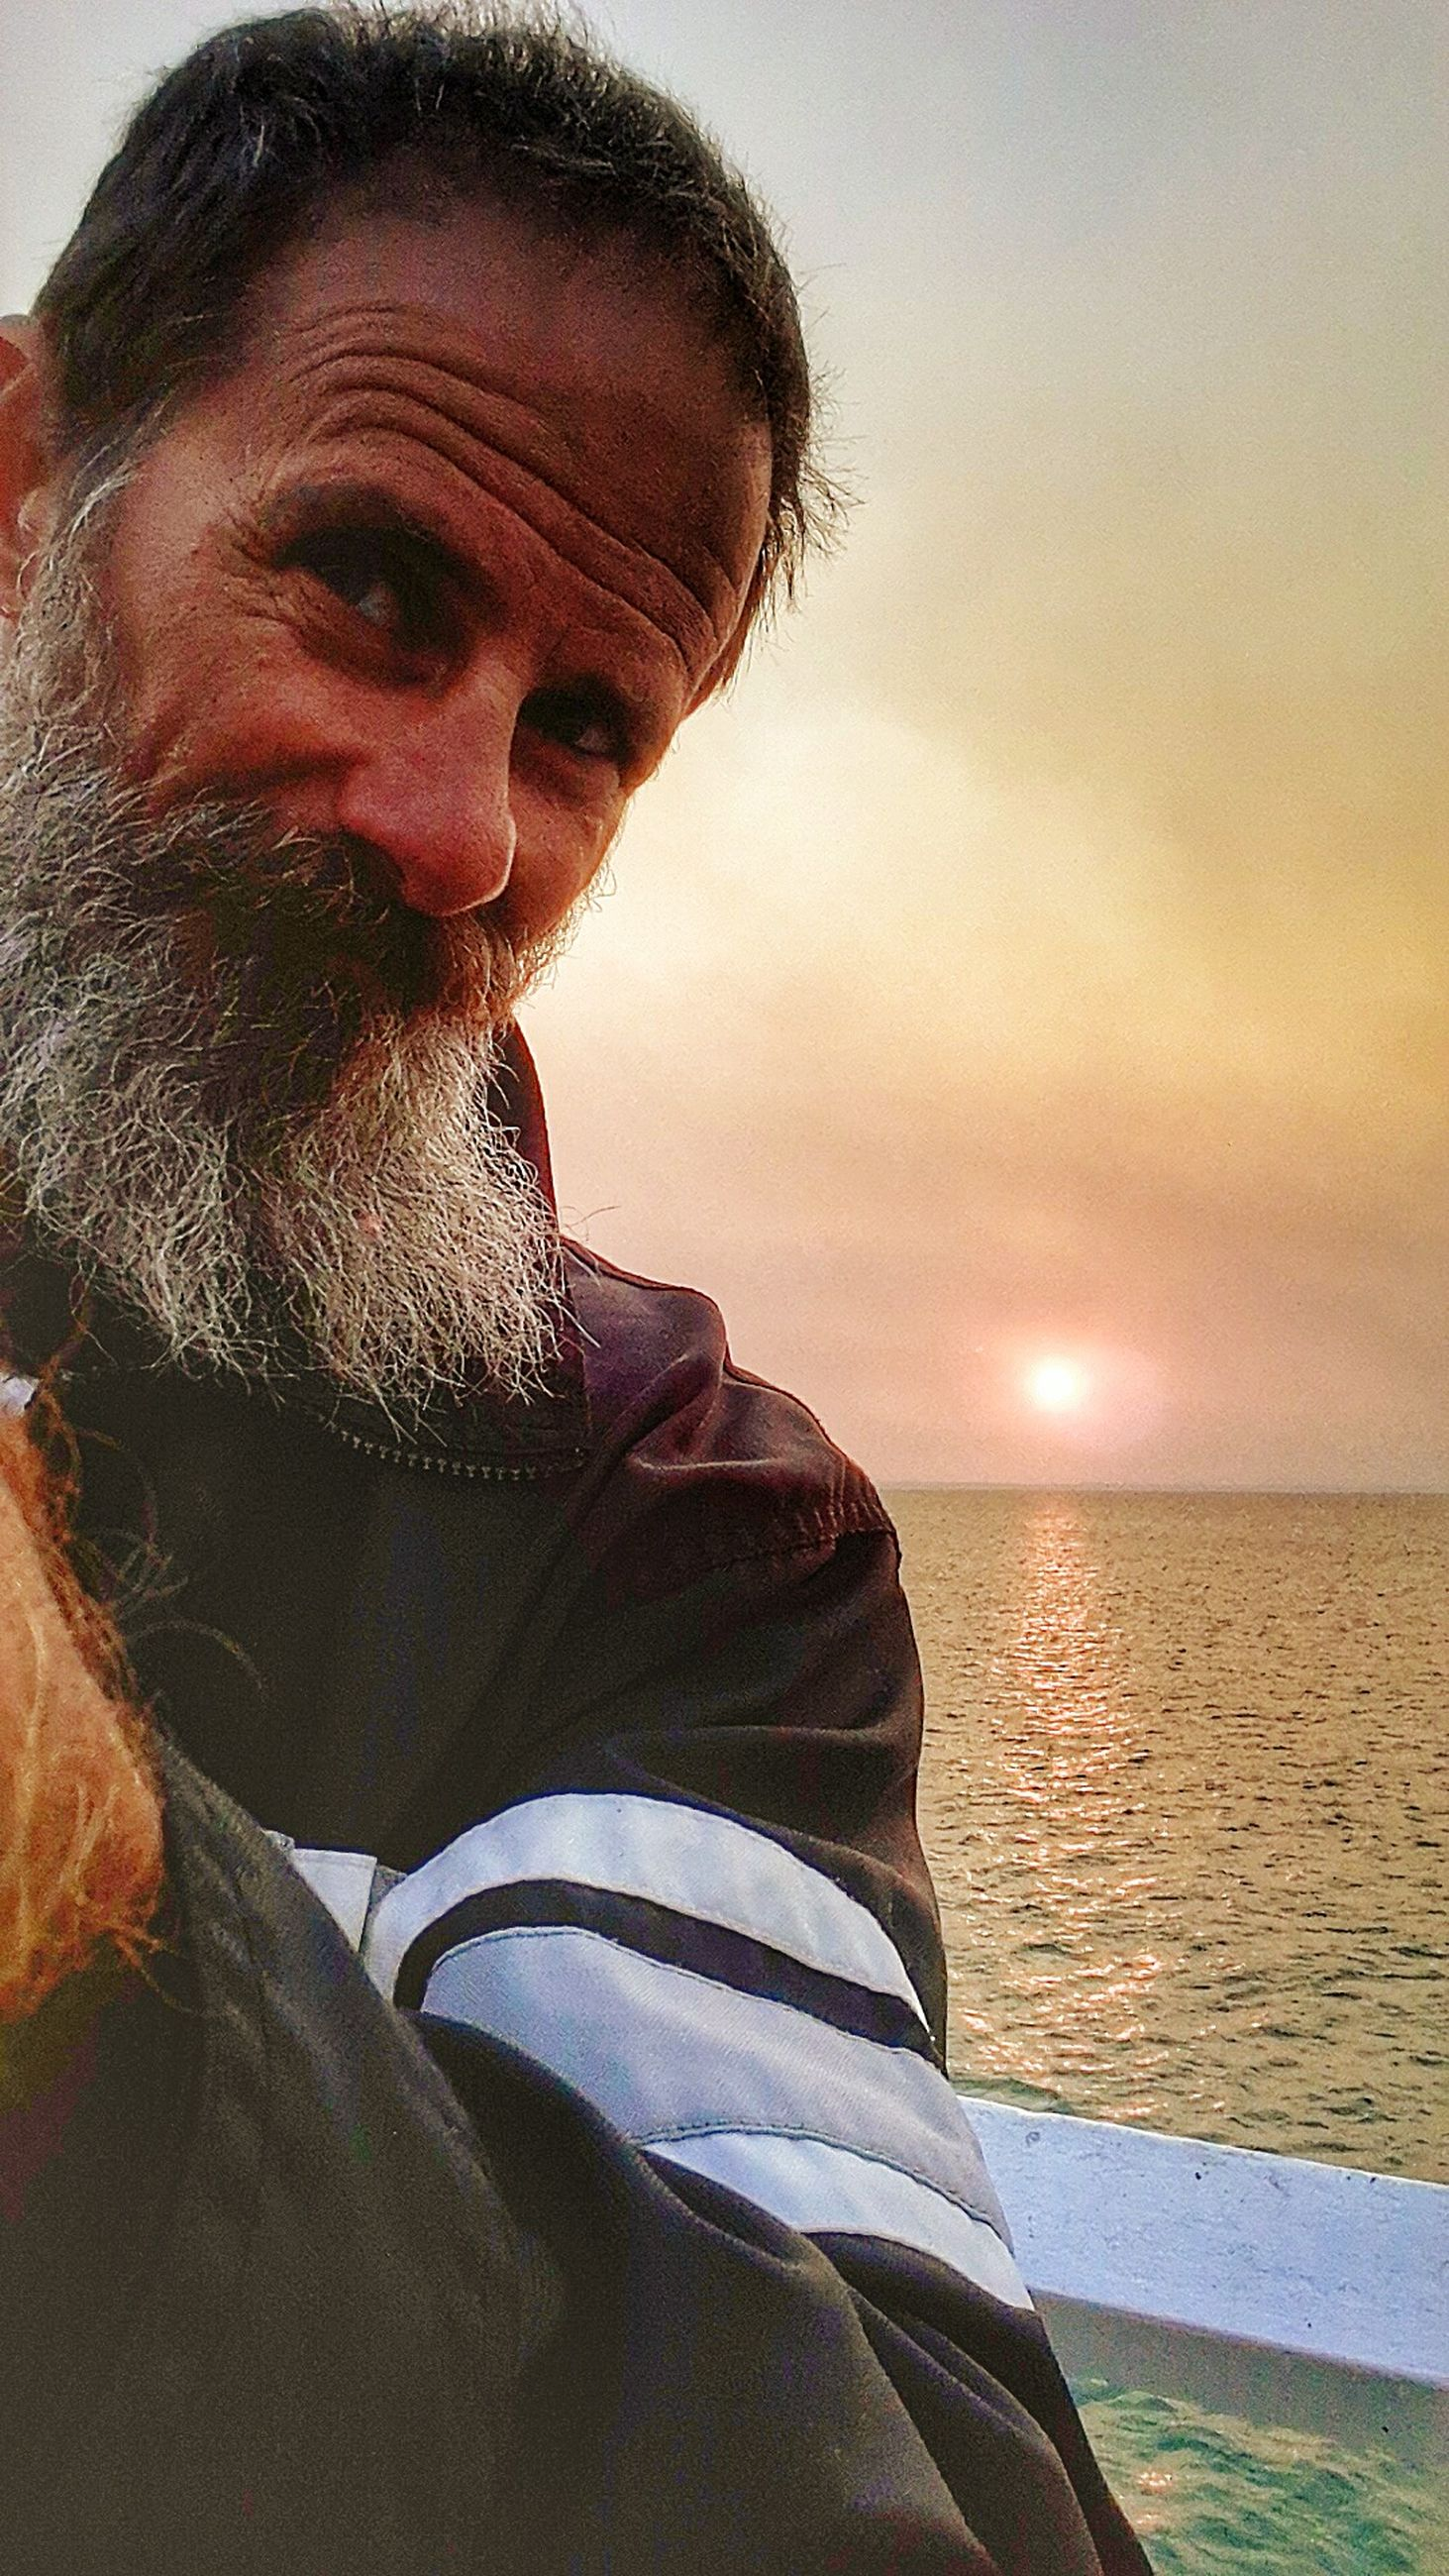 sea, one person, water, beard, real people, beach, horizon over water, leisure activity, nature, outdoors, mature men, scenics, lifestyles, sky, mature adult, beauty in nature, sunset, men, close-up, day, people